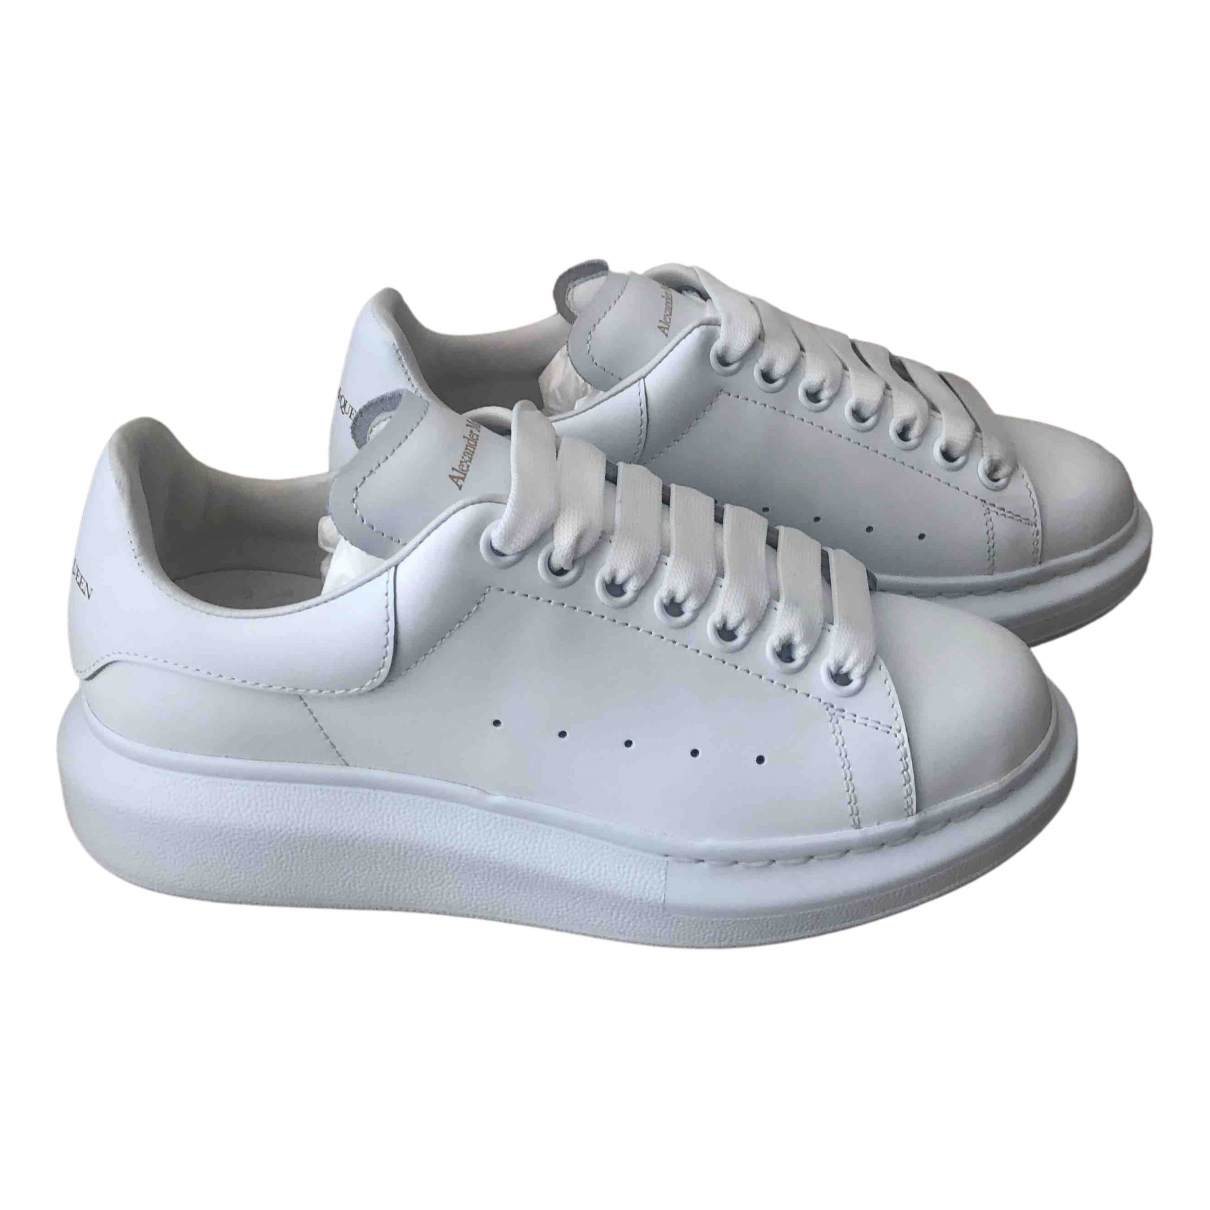 Alexander Mcqueen Oversize White Leather Trainers for Women 37 EU